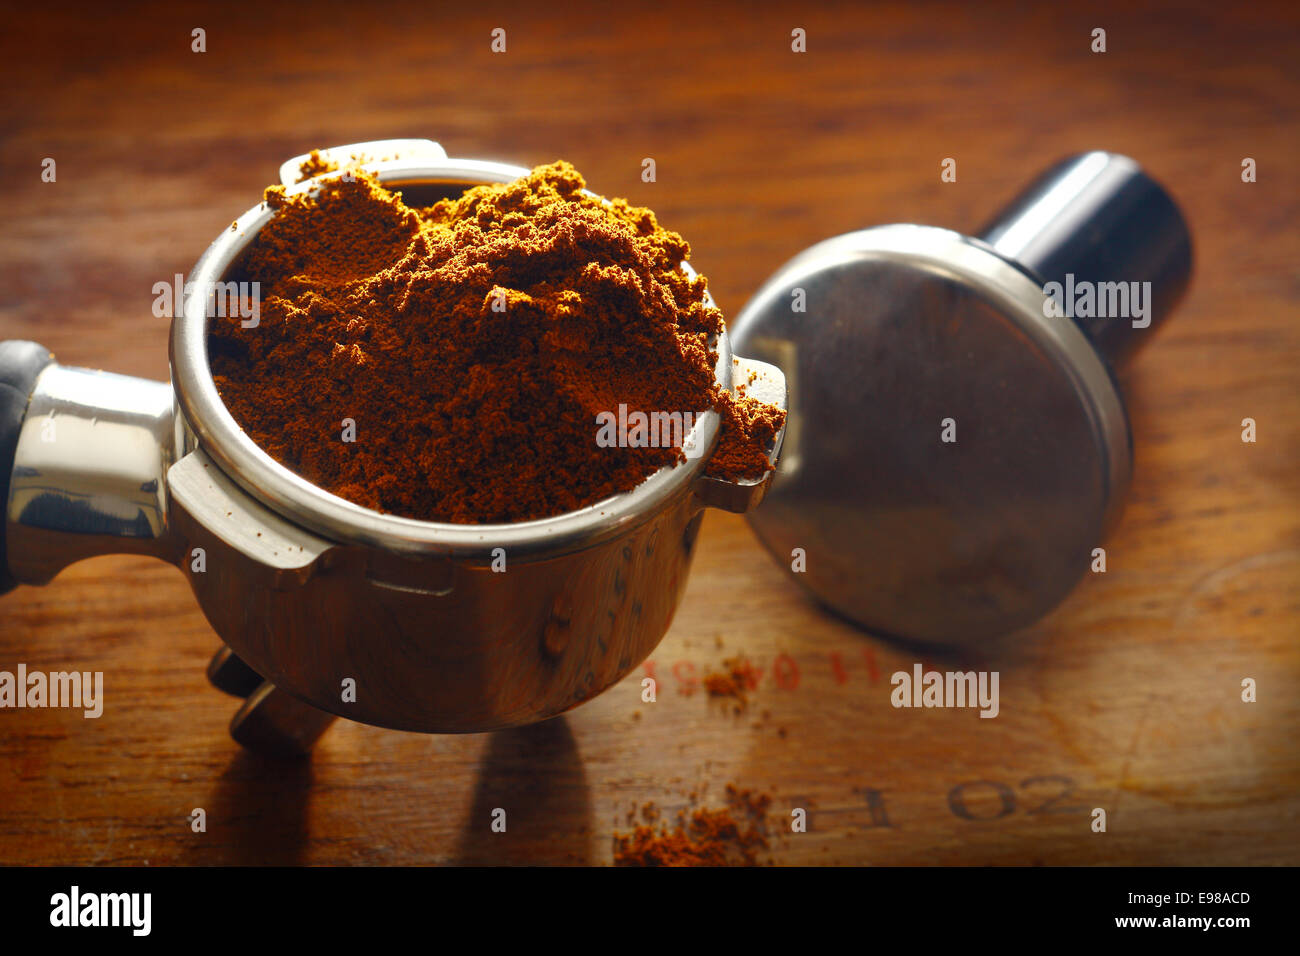 Freshly ground coffee overflowing over the rim of a metal filter onto a wooden surface with measuring spoon - Stock Image